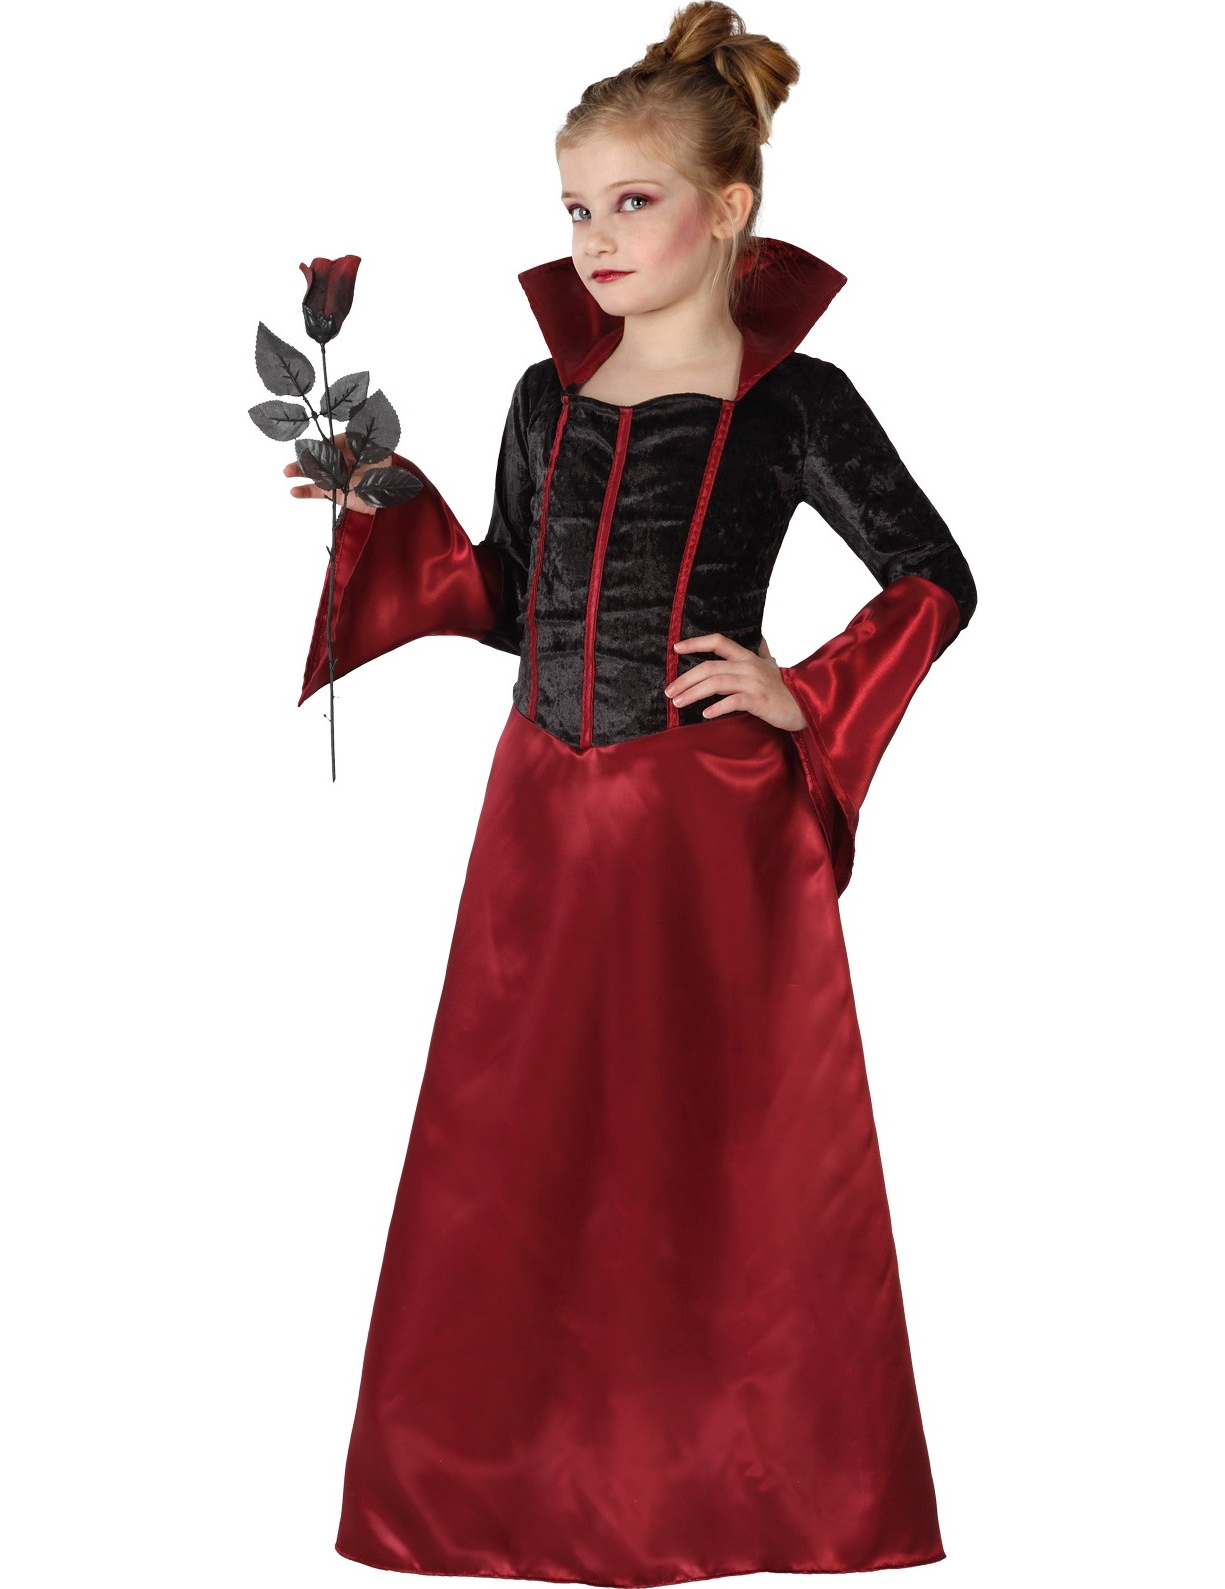 San Francisco vendita economica sconto del 50 Costume vampiro bambina con gonna satinata